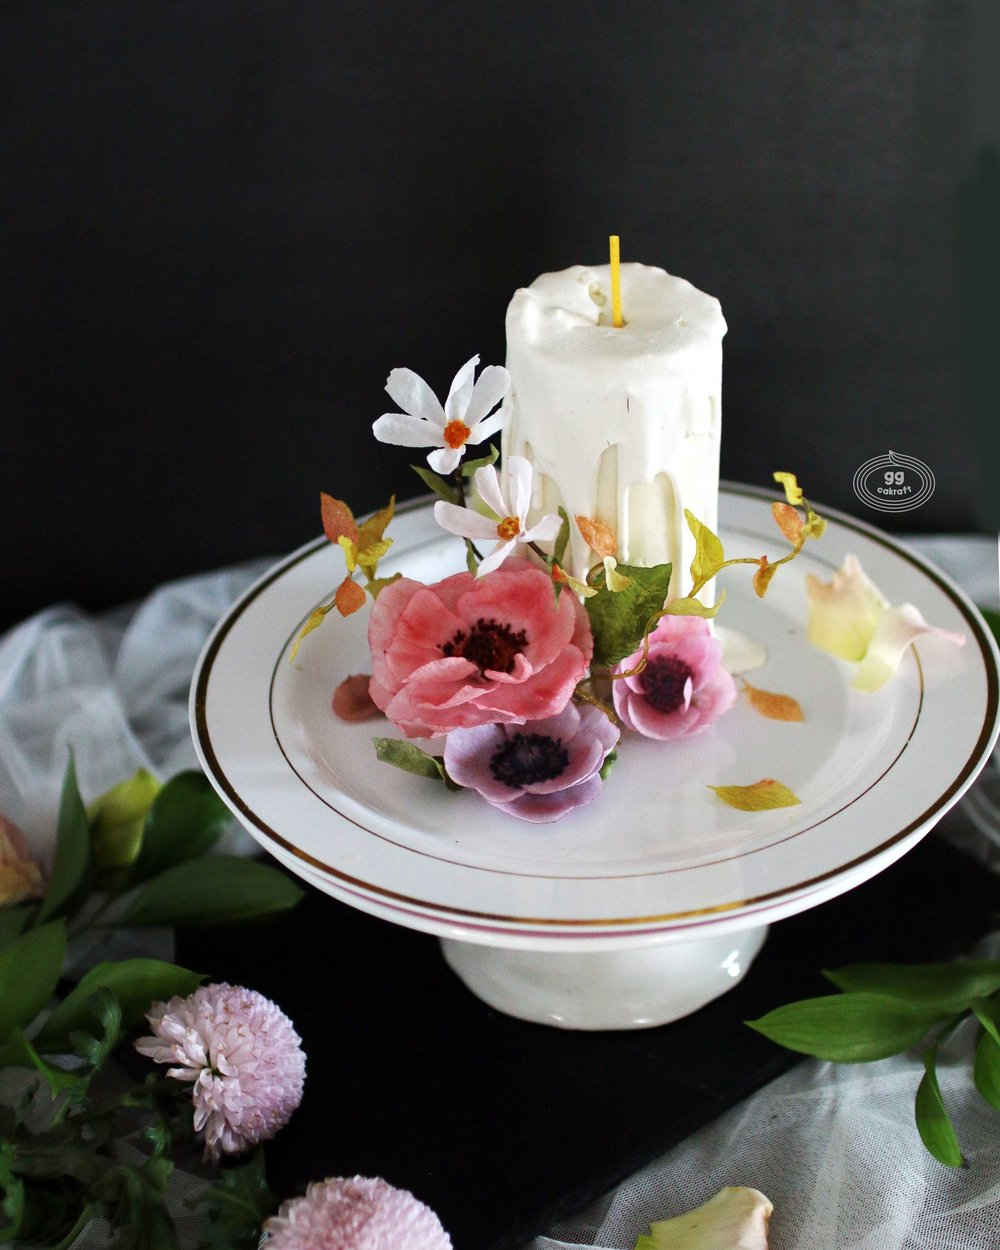 Candle cake X Wafer pafer flower   - Anemone, Cosmos, 3D leaf, 3D stem  - The images are for reference ONLY